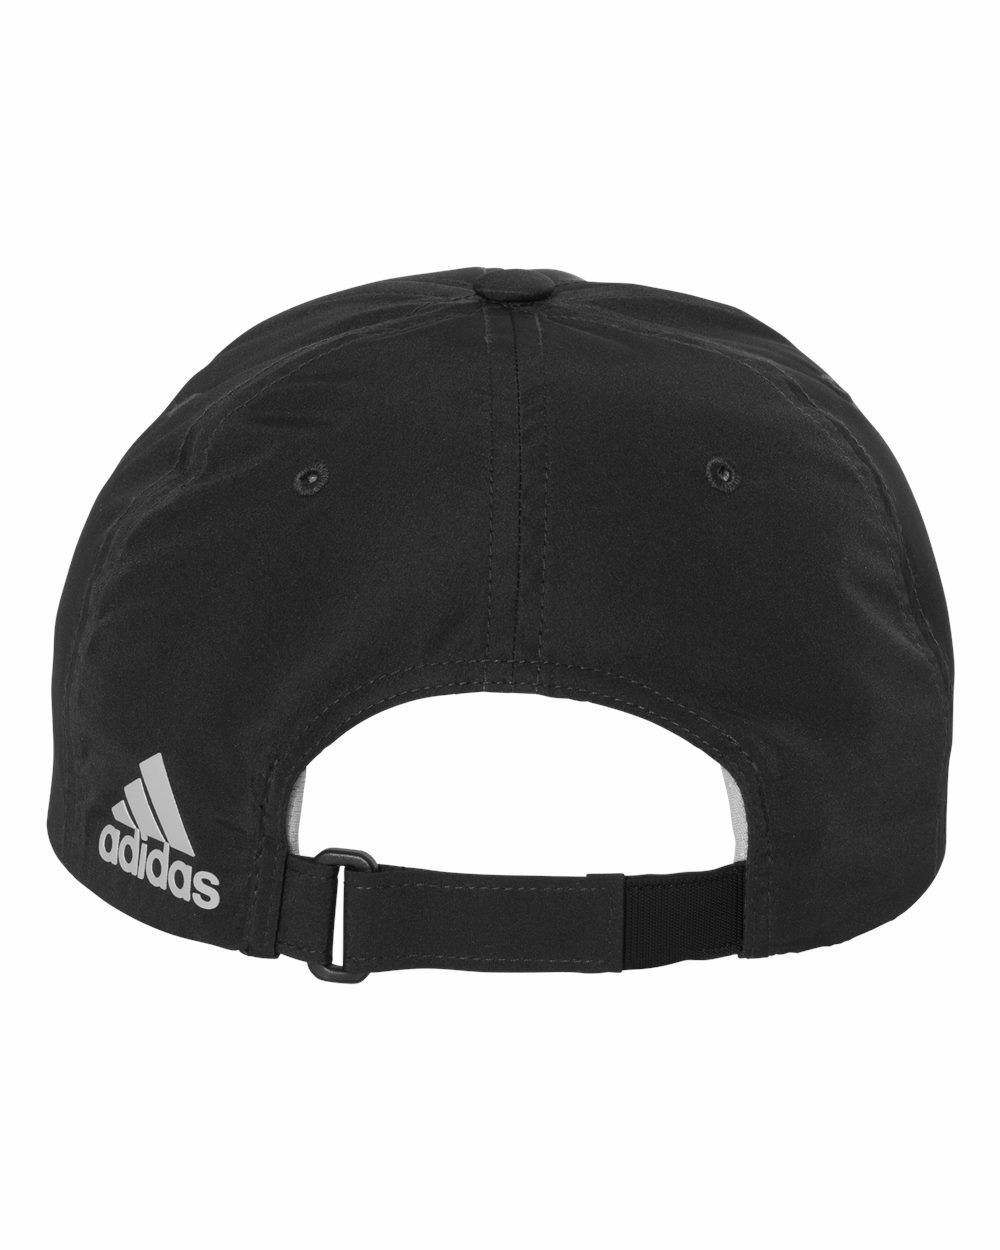 f8e4f70bf3f ADIDAS GOLF HAT NEW Men s Adjustable Polyester Performance Relaxed Baseball  Cap